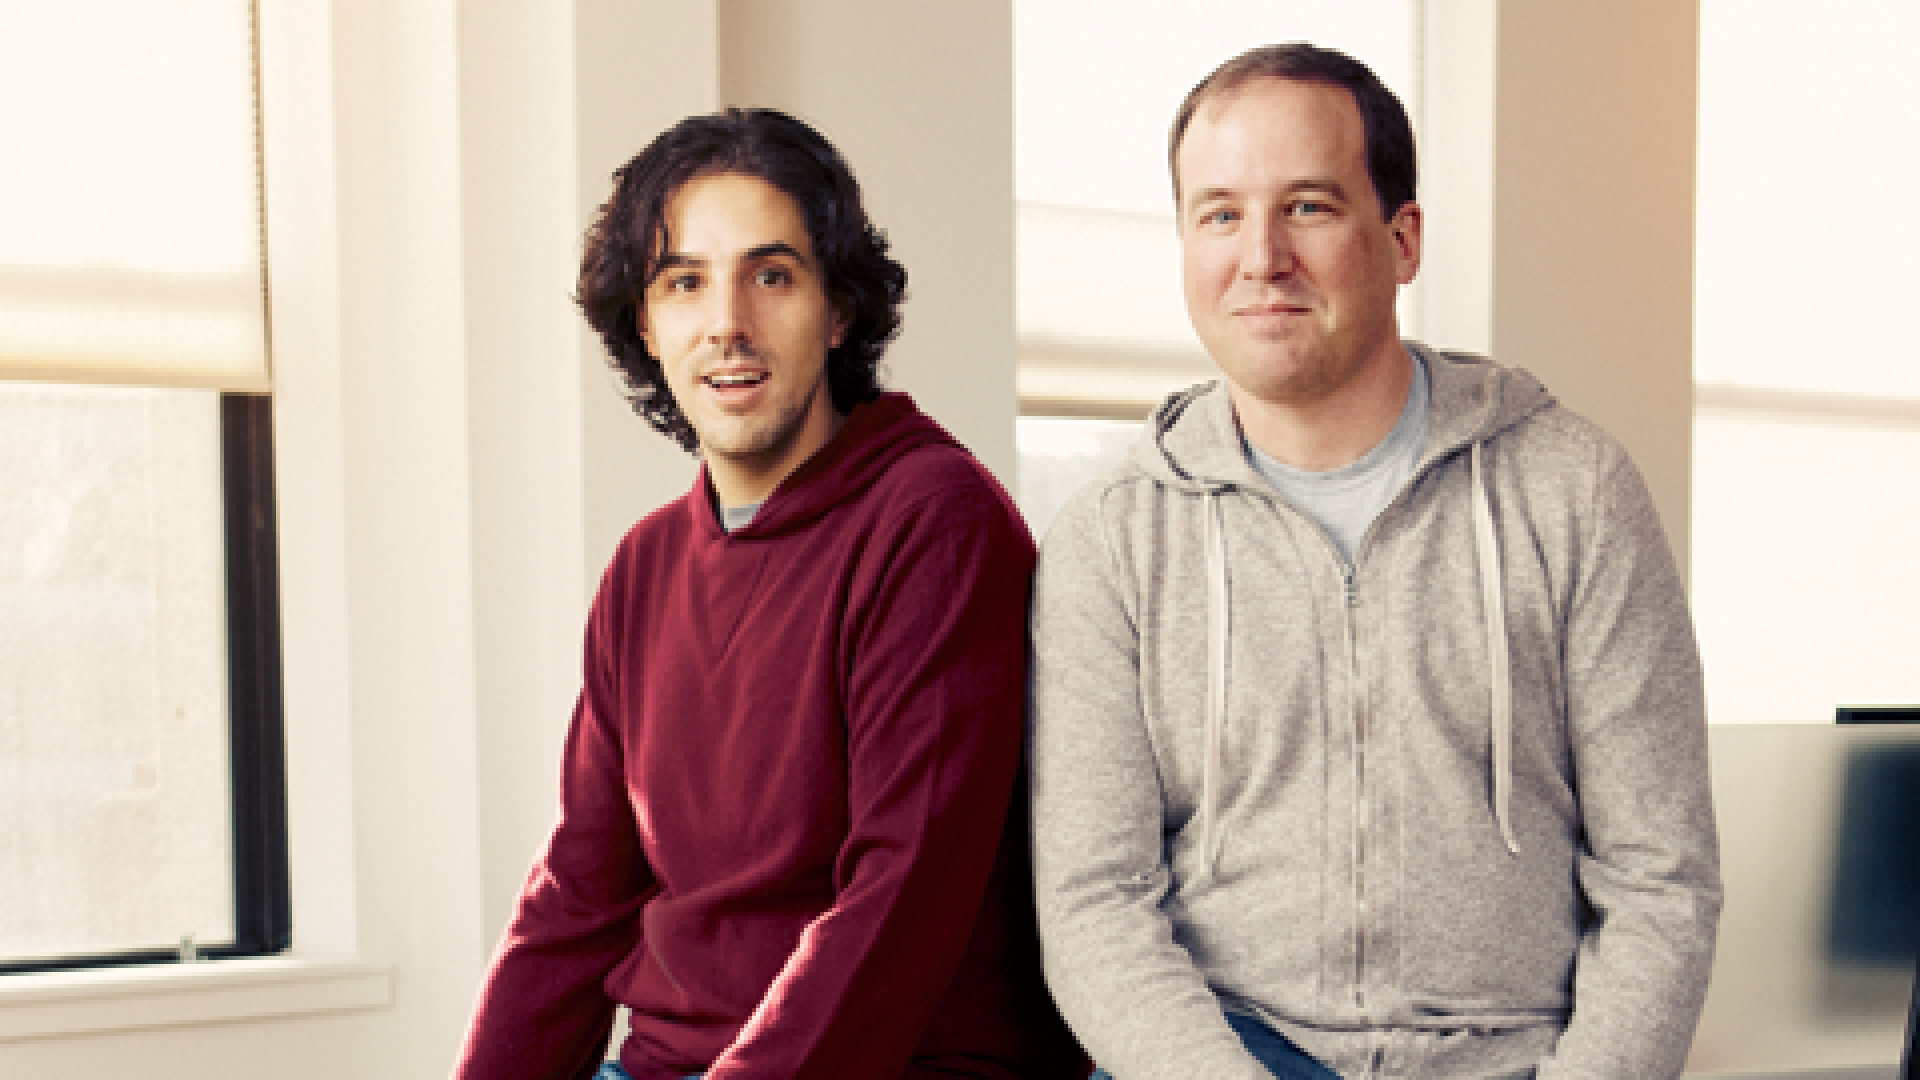 <b>The Gatekeepers</b> David Tisch (left) runs TechStars's New York City program, which graduates a class of start-ups every nine months. David Cohen co-founded TechStars, in Boulder, Colorado.